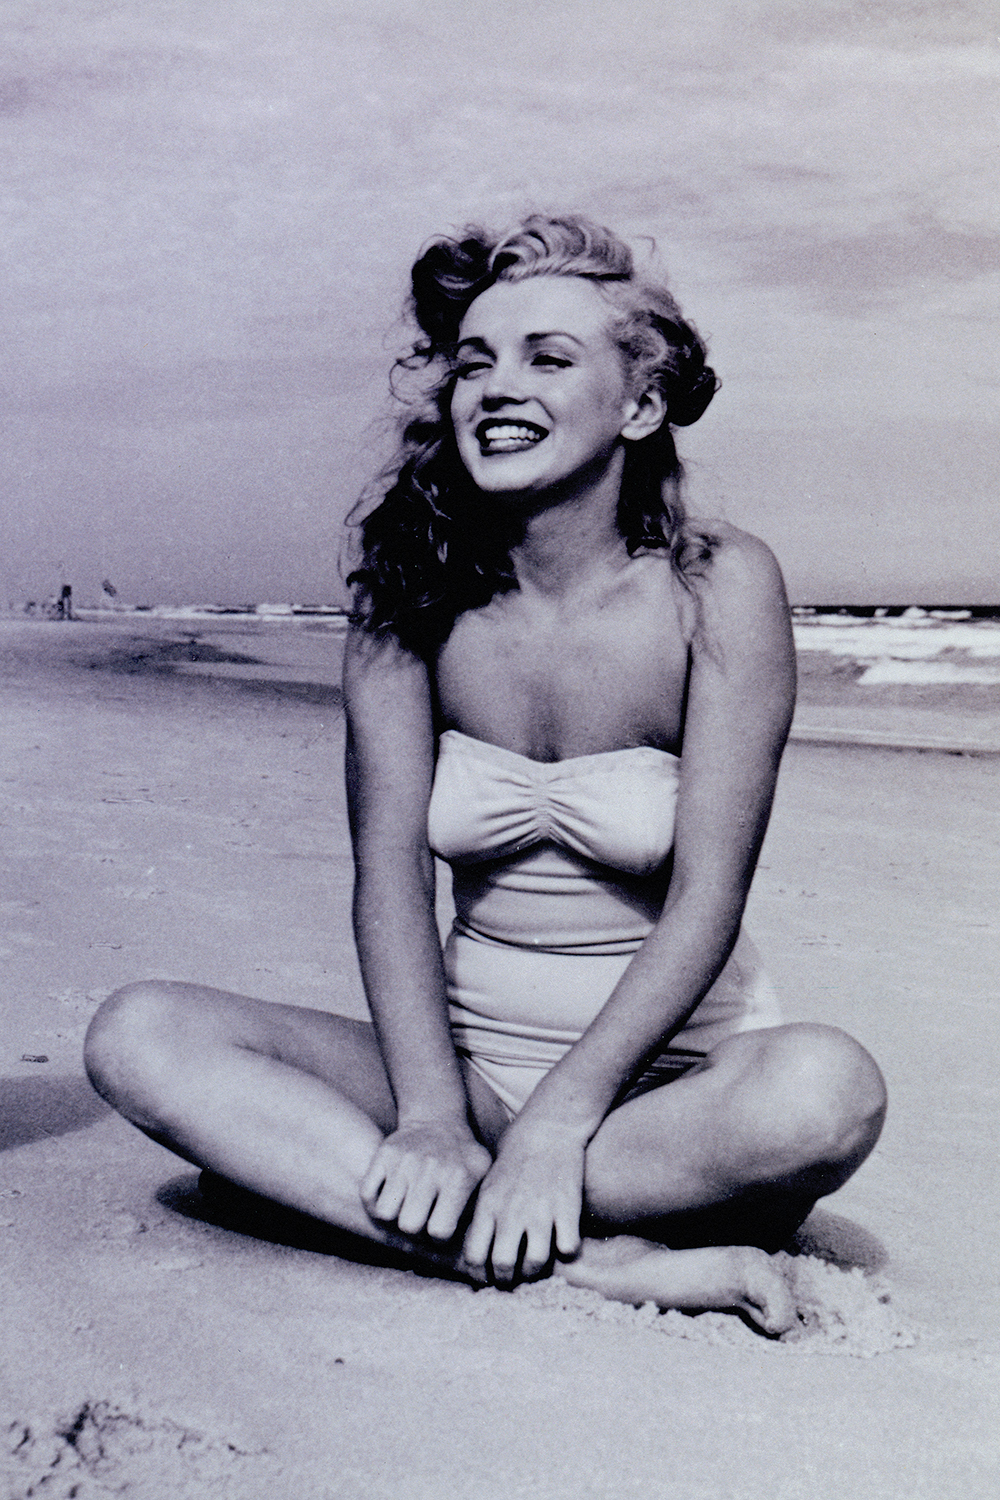 black and white picture of marilyn monroe sitting cross-legged and smiling on the beach